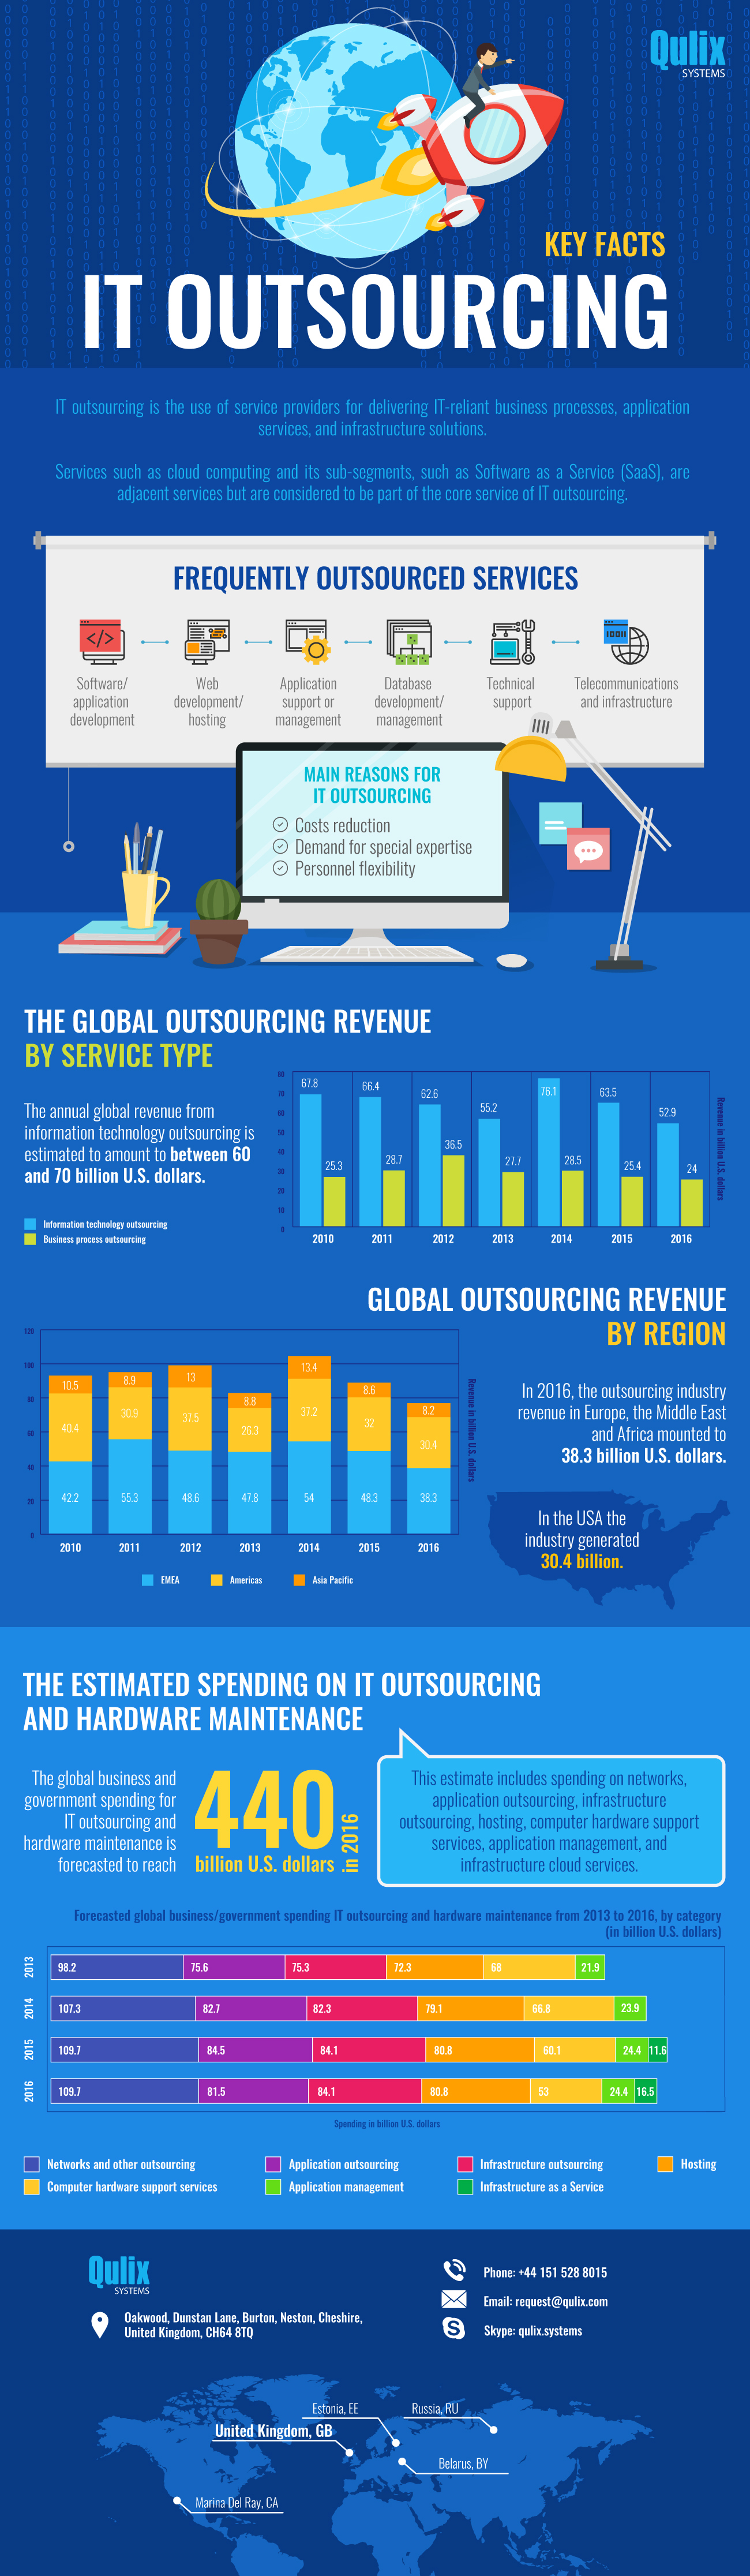 IT-Outsourcing-Key-Facts (2)